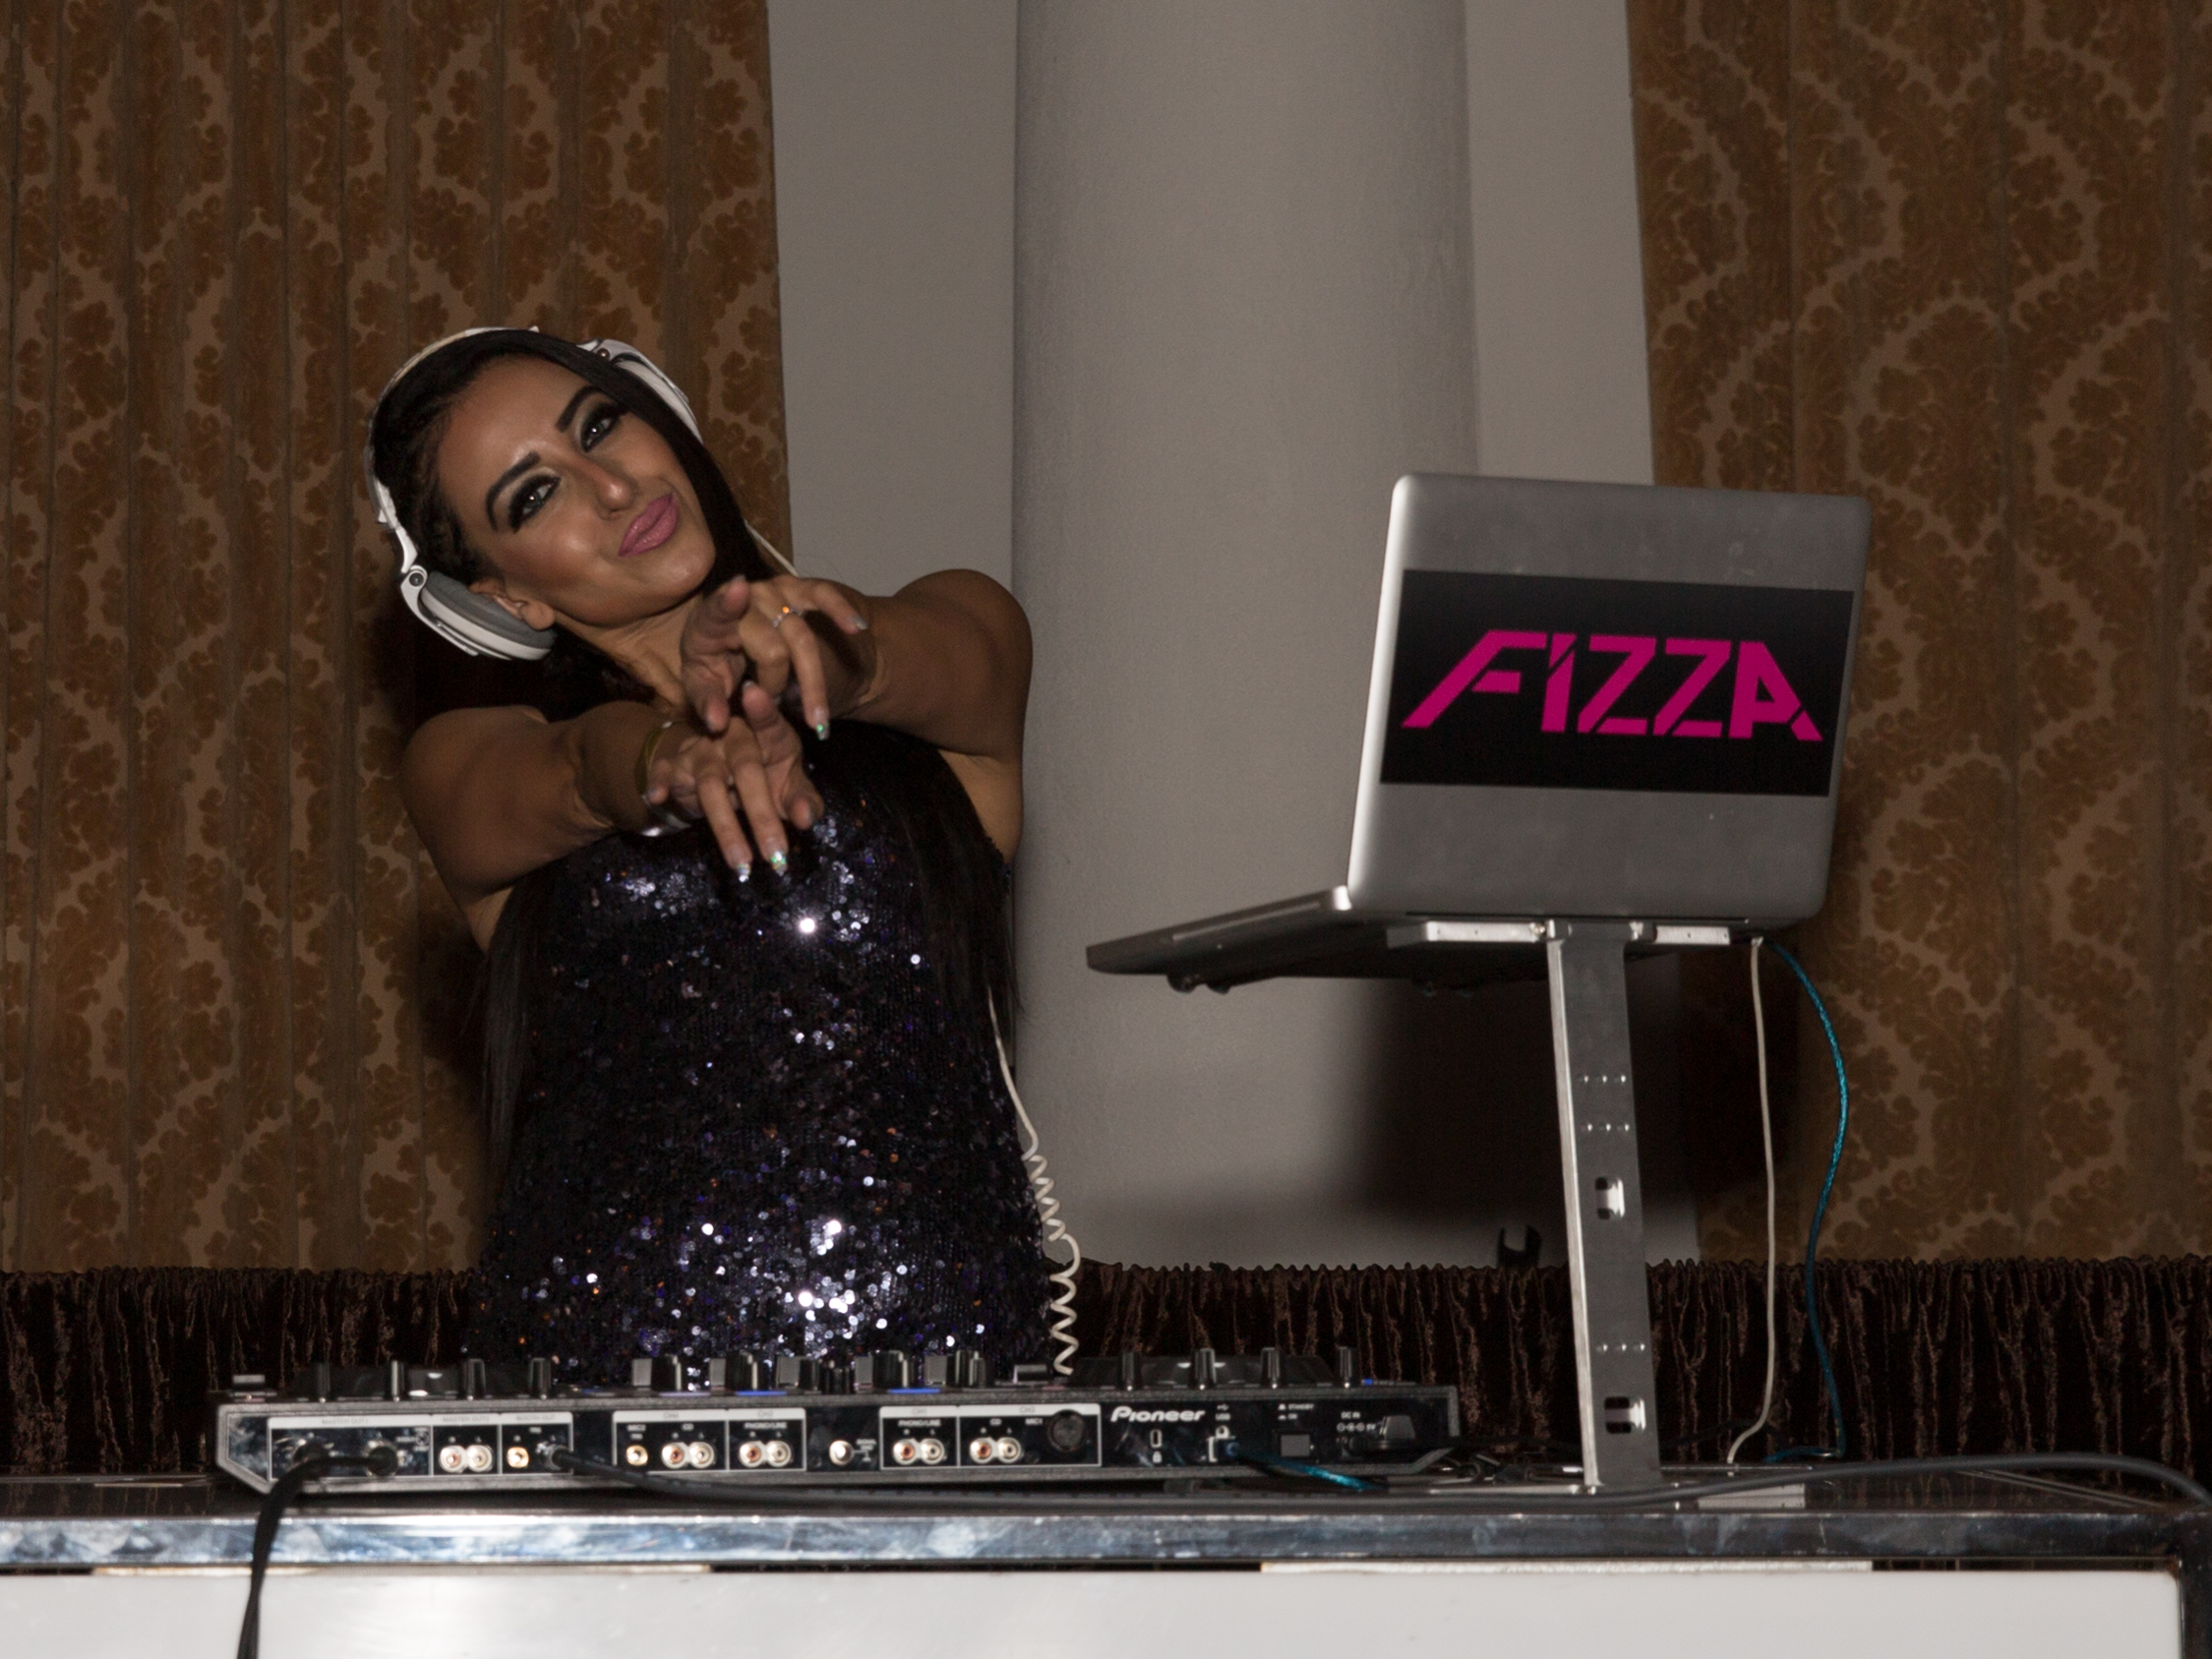 DJ Fizza Spinning During Media Reception